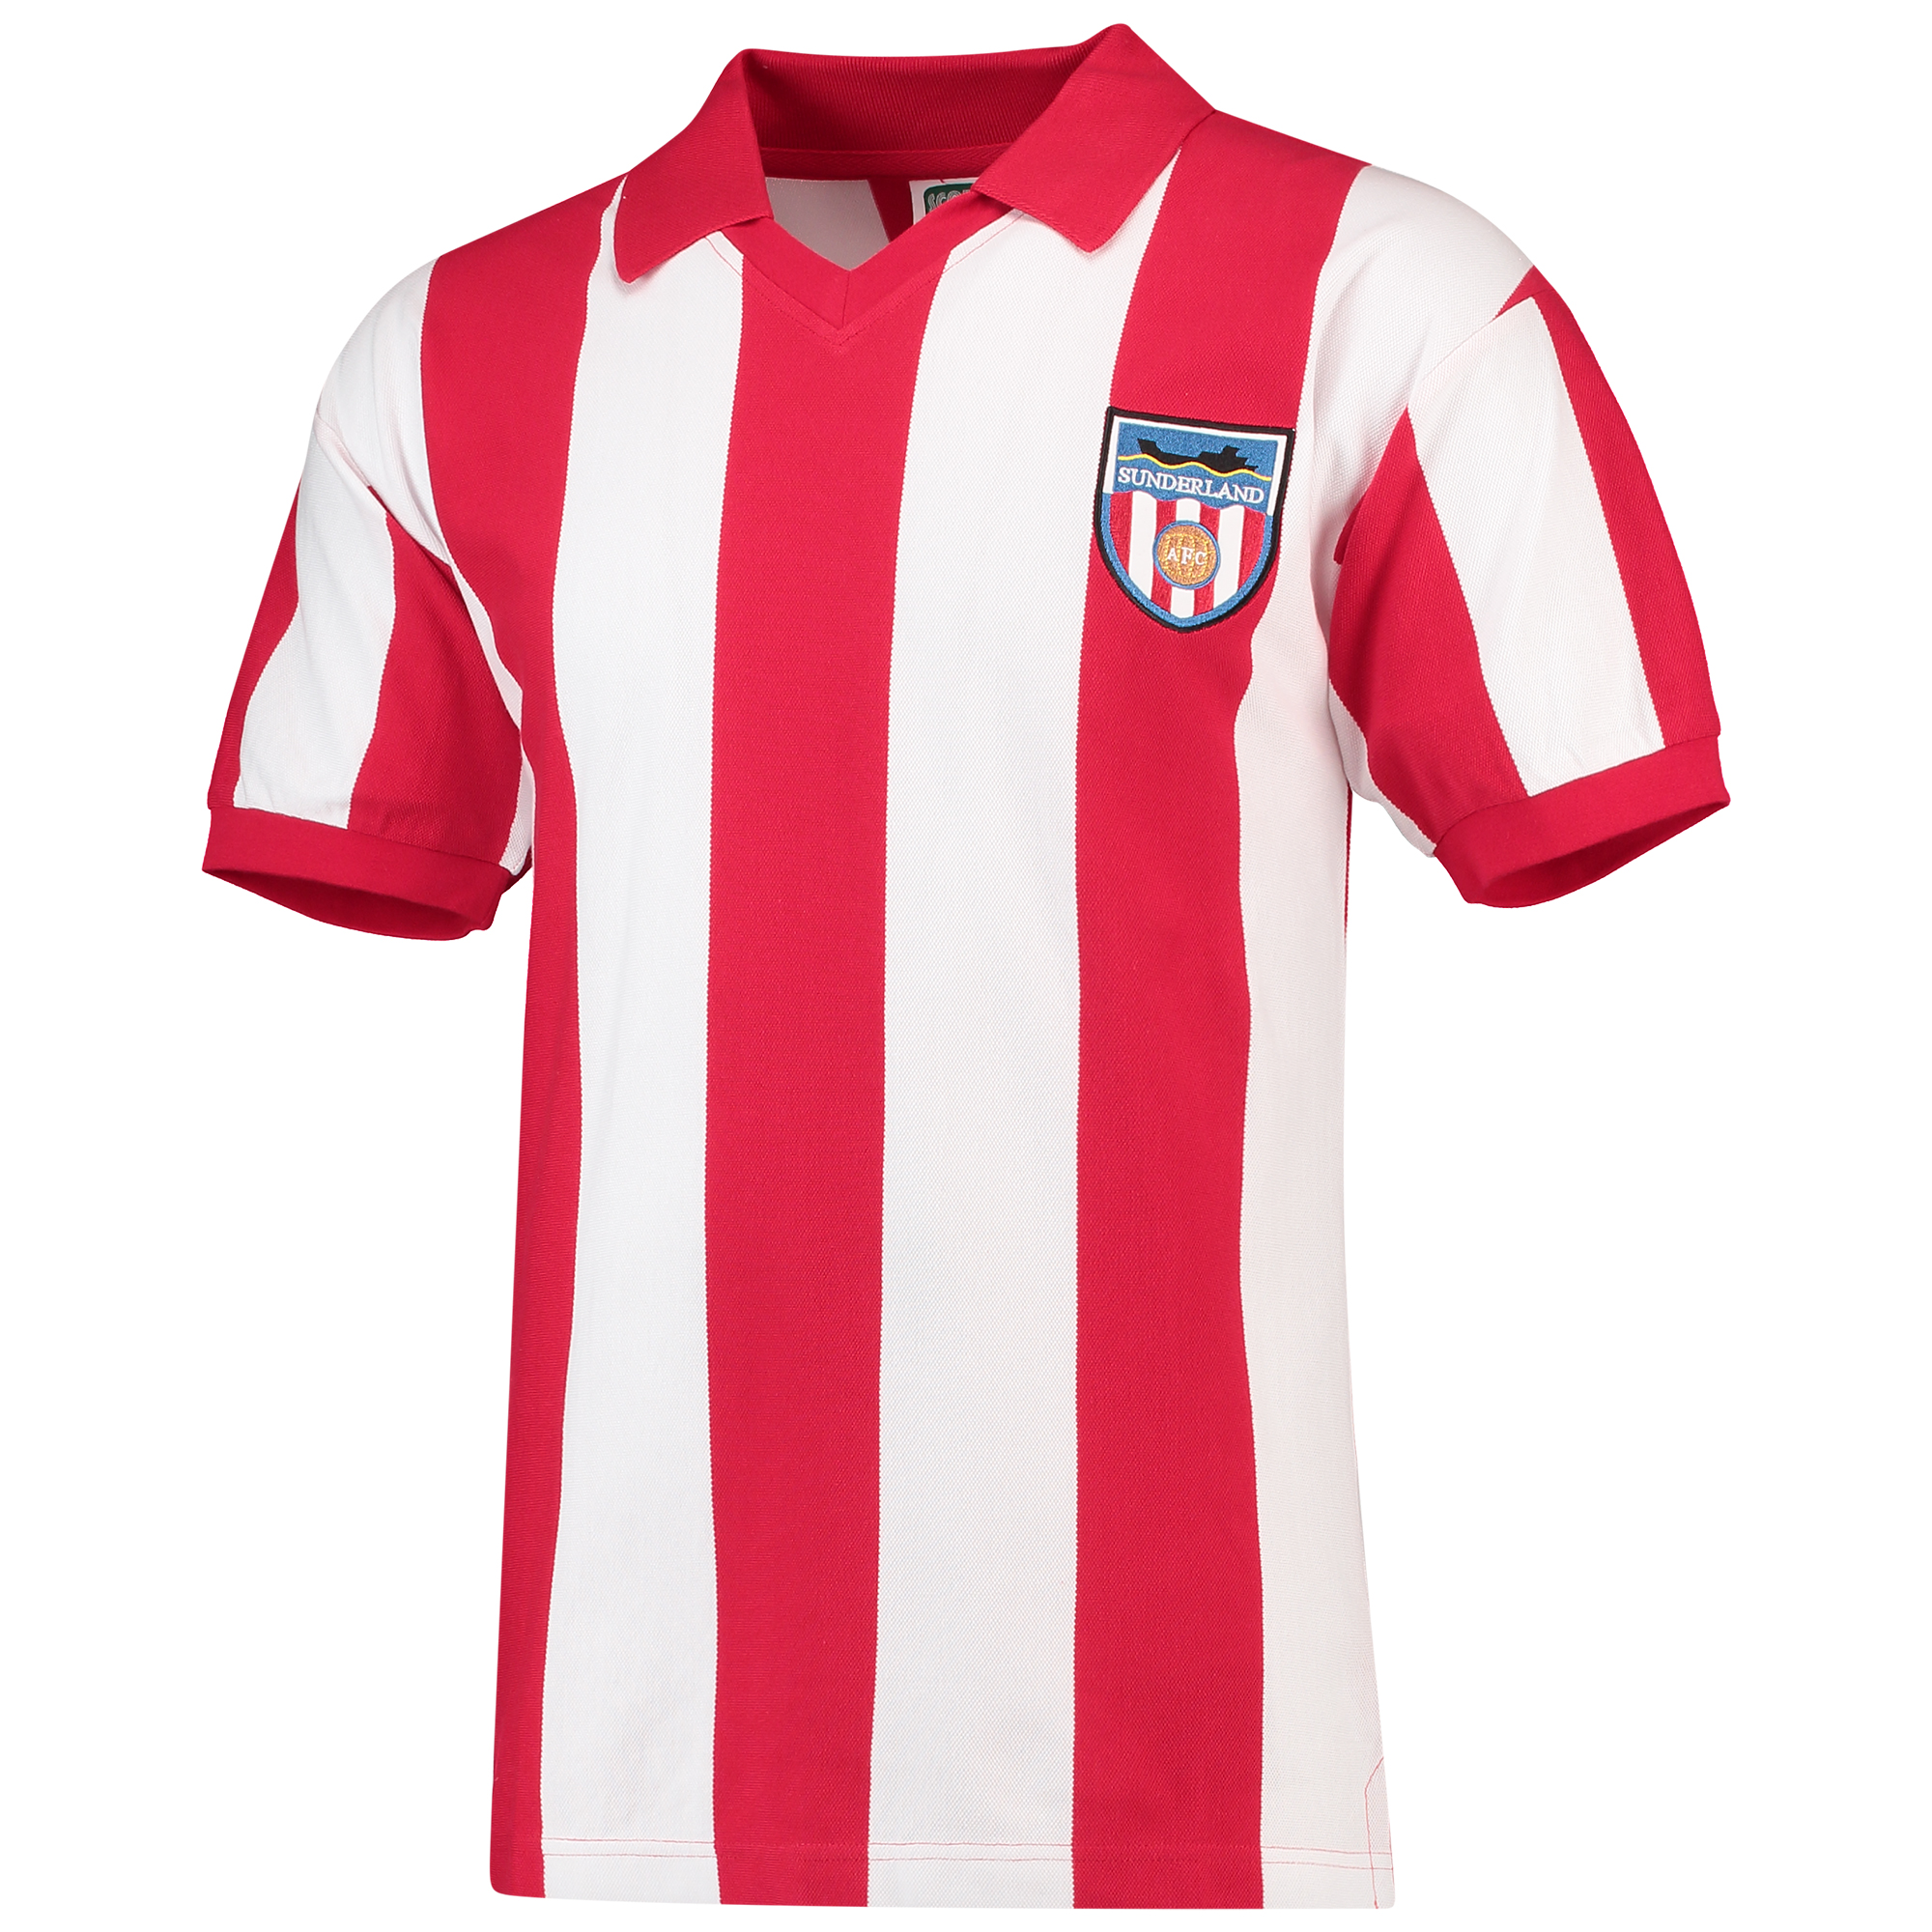 Sunderland 1978 Home Retro Shirt